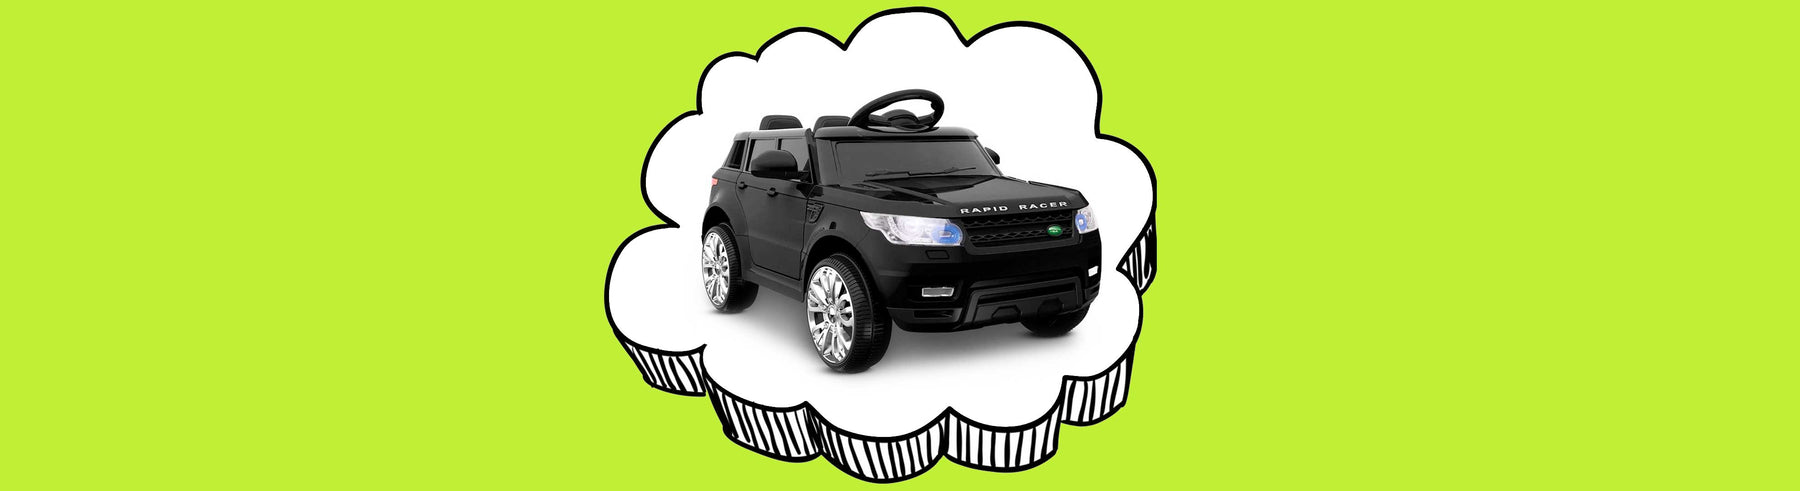 Range Rover Inspired Kids Ride On Car with Remote Control